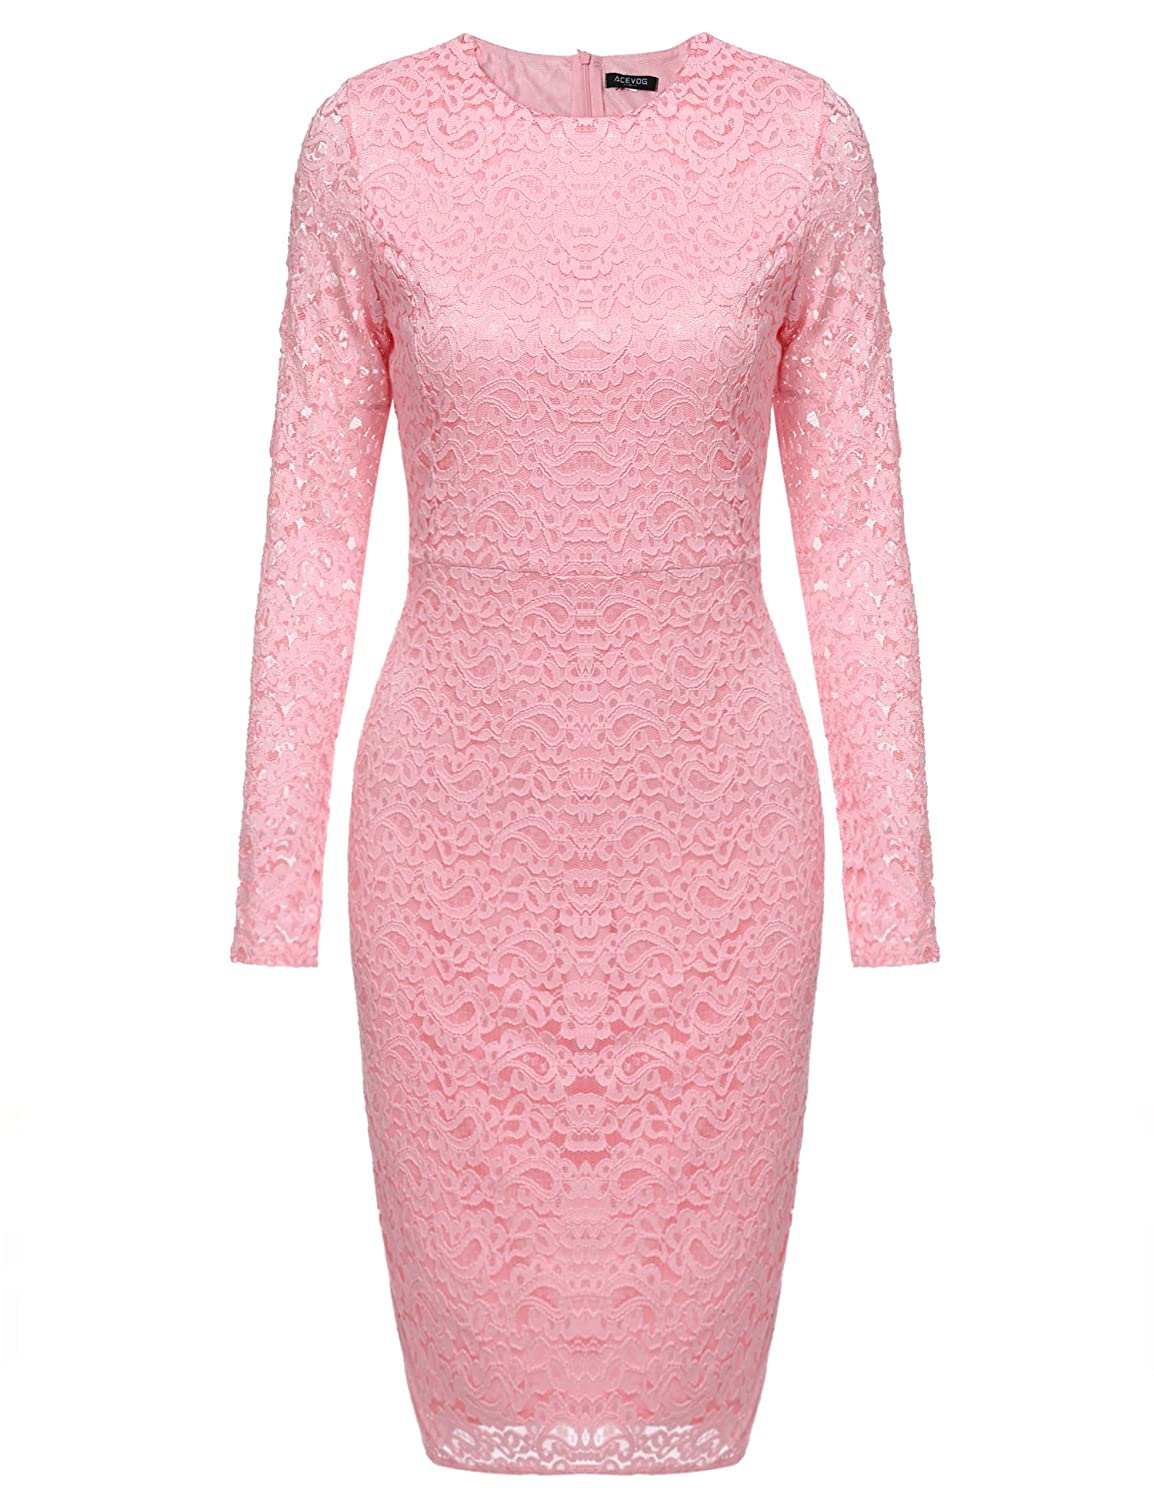 ACEVOG Women Elegant Floral Lace Long Sleeve Bodycon Cocktail Pencil Dress